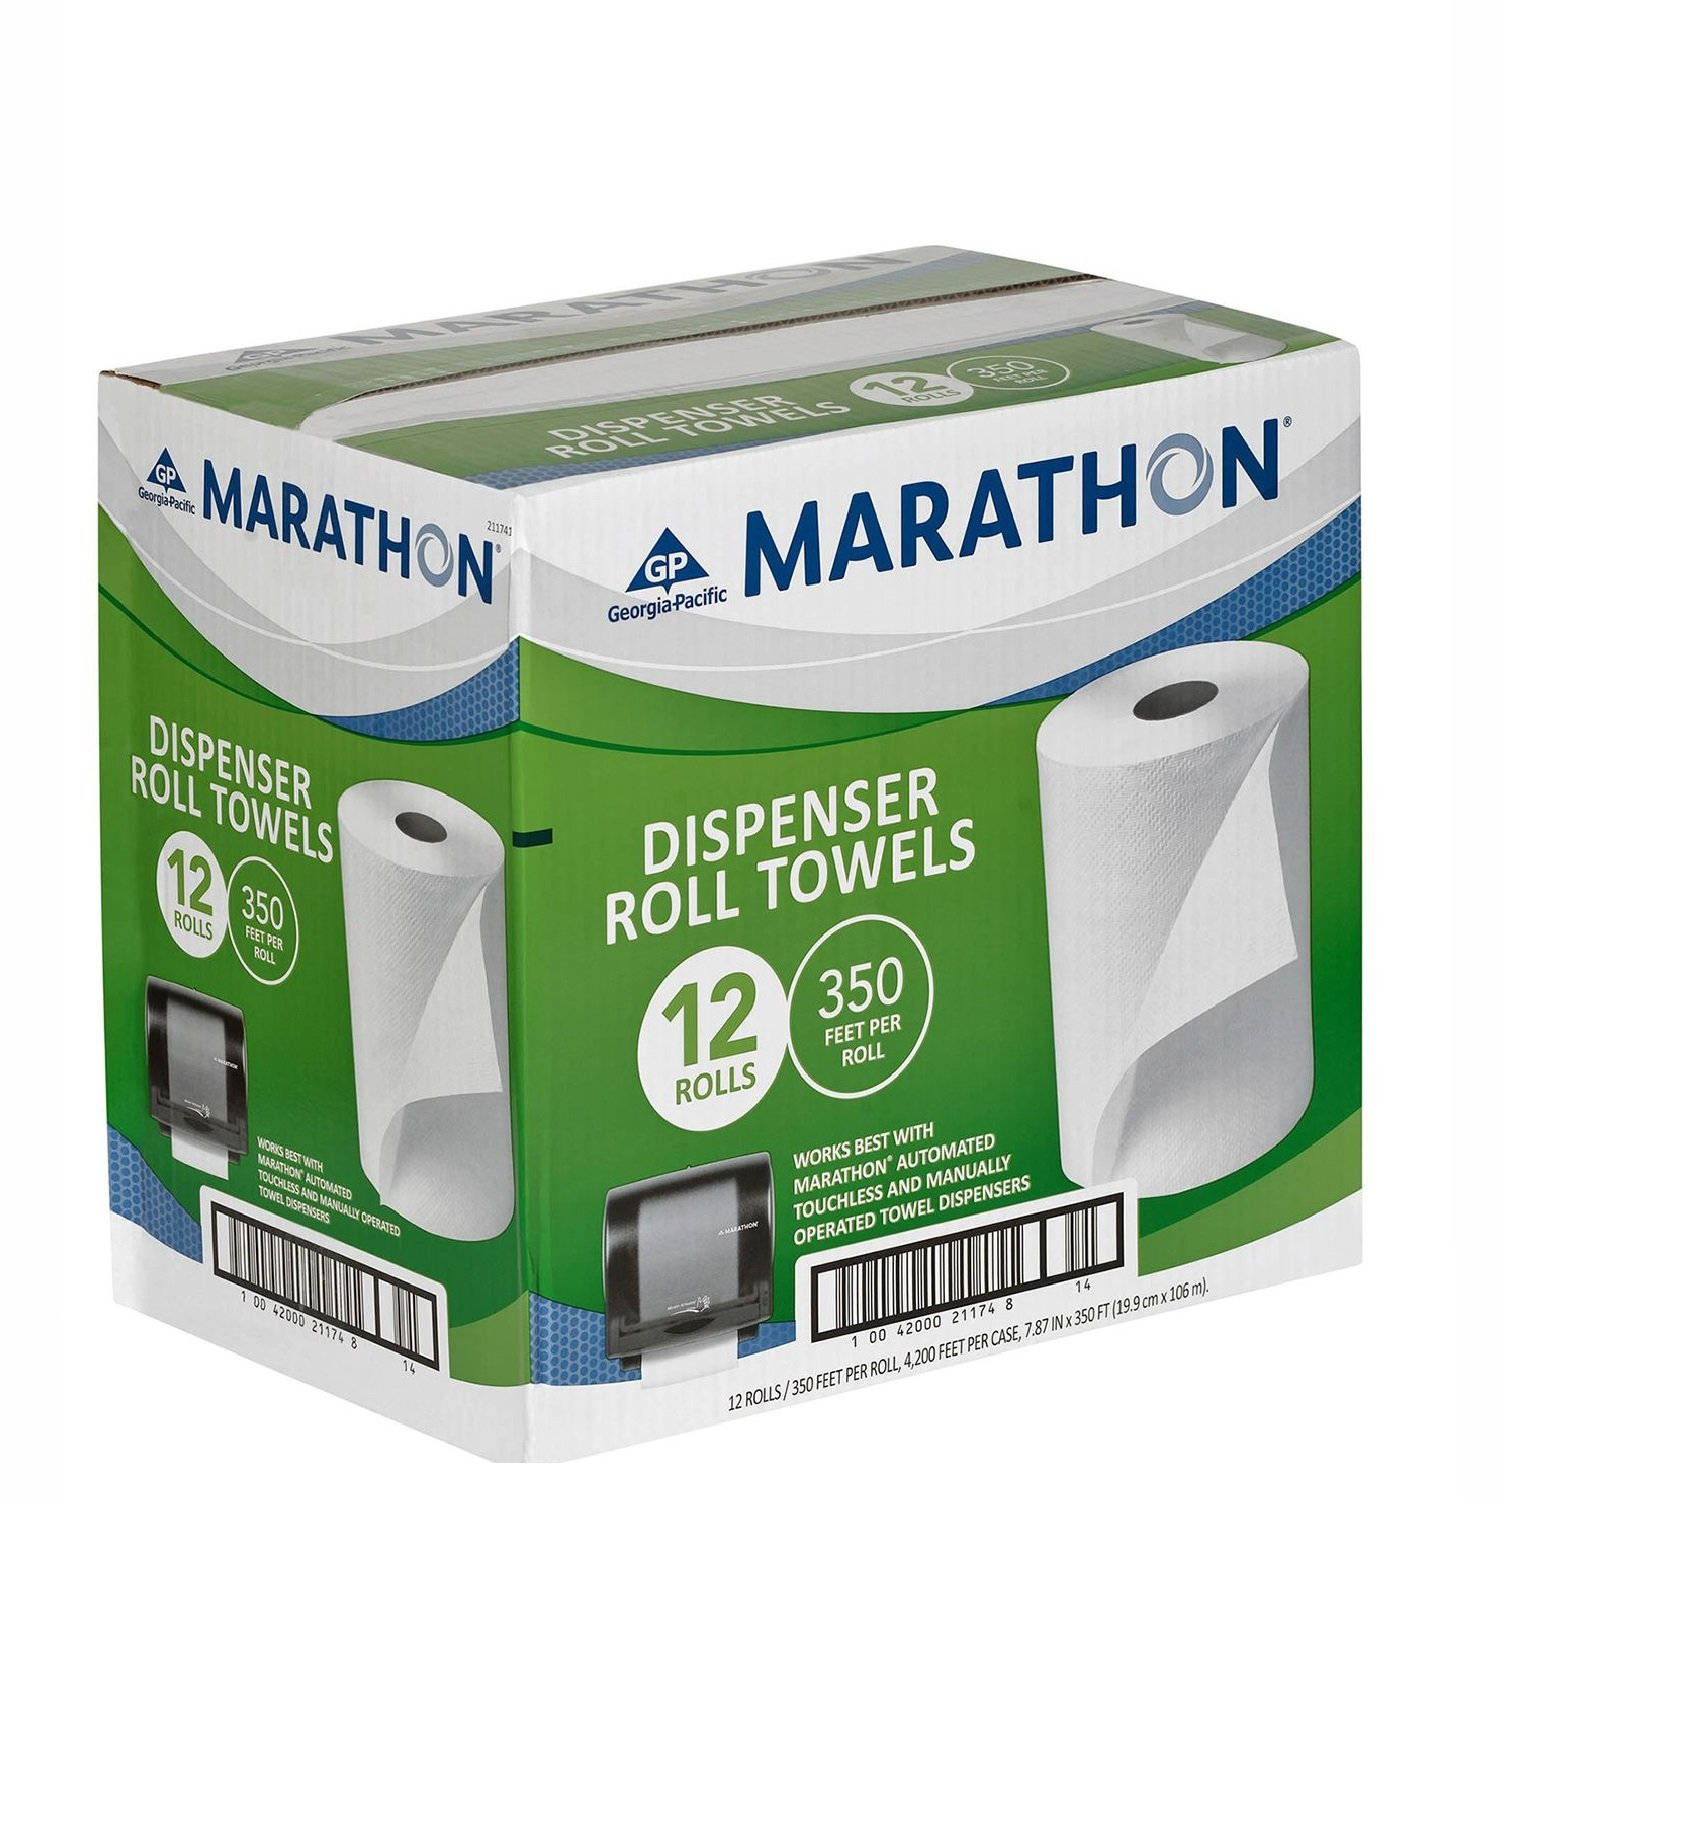 Marathon Dispenser Roll Towels 12 Rolls for Marathon Commercial Kitchen Bathroom Towel Dispensers Bulk Case 4,200